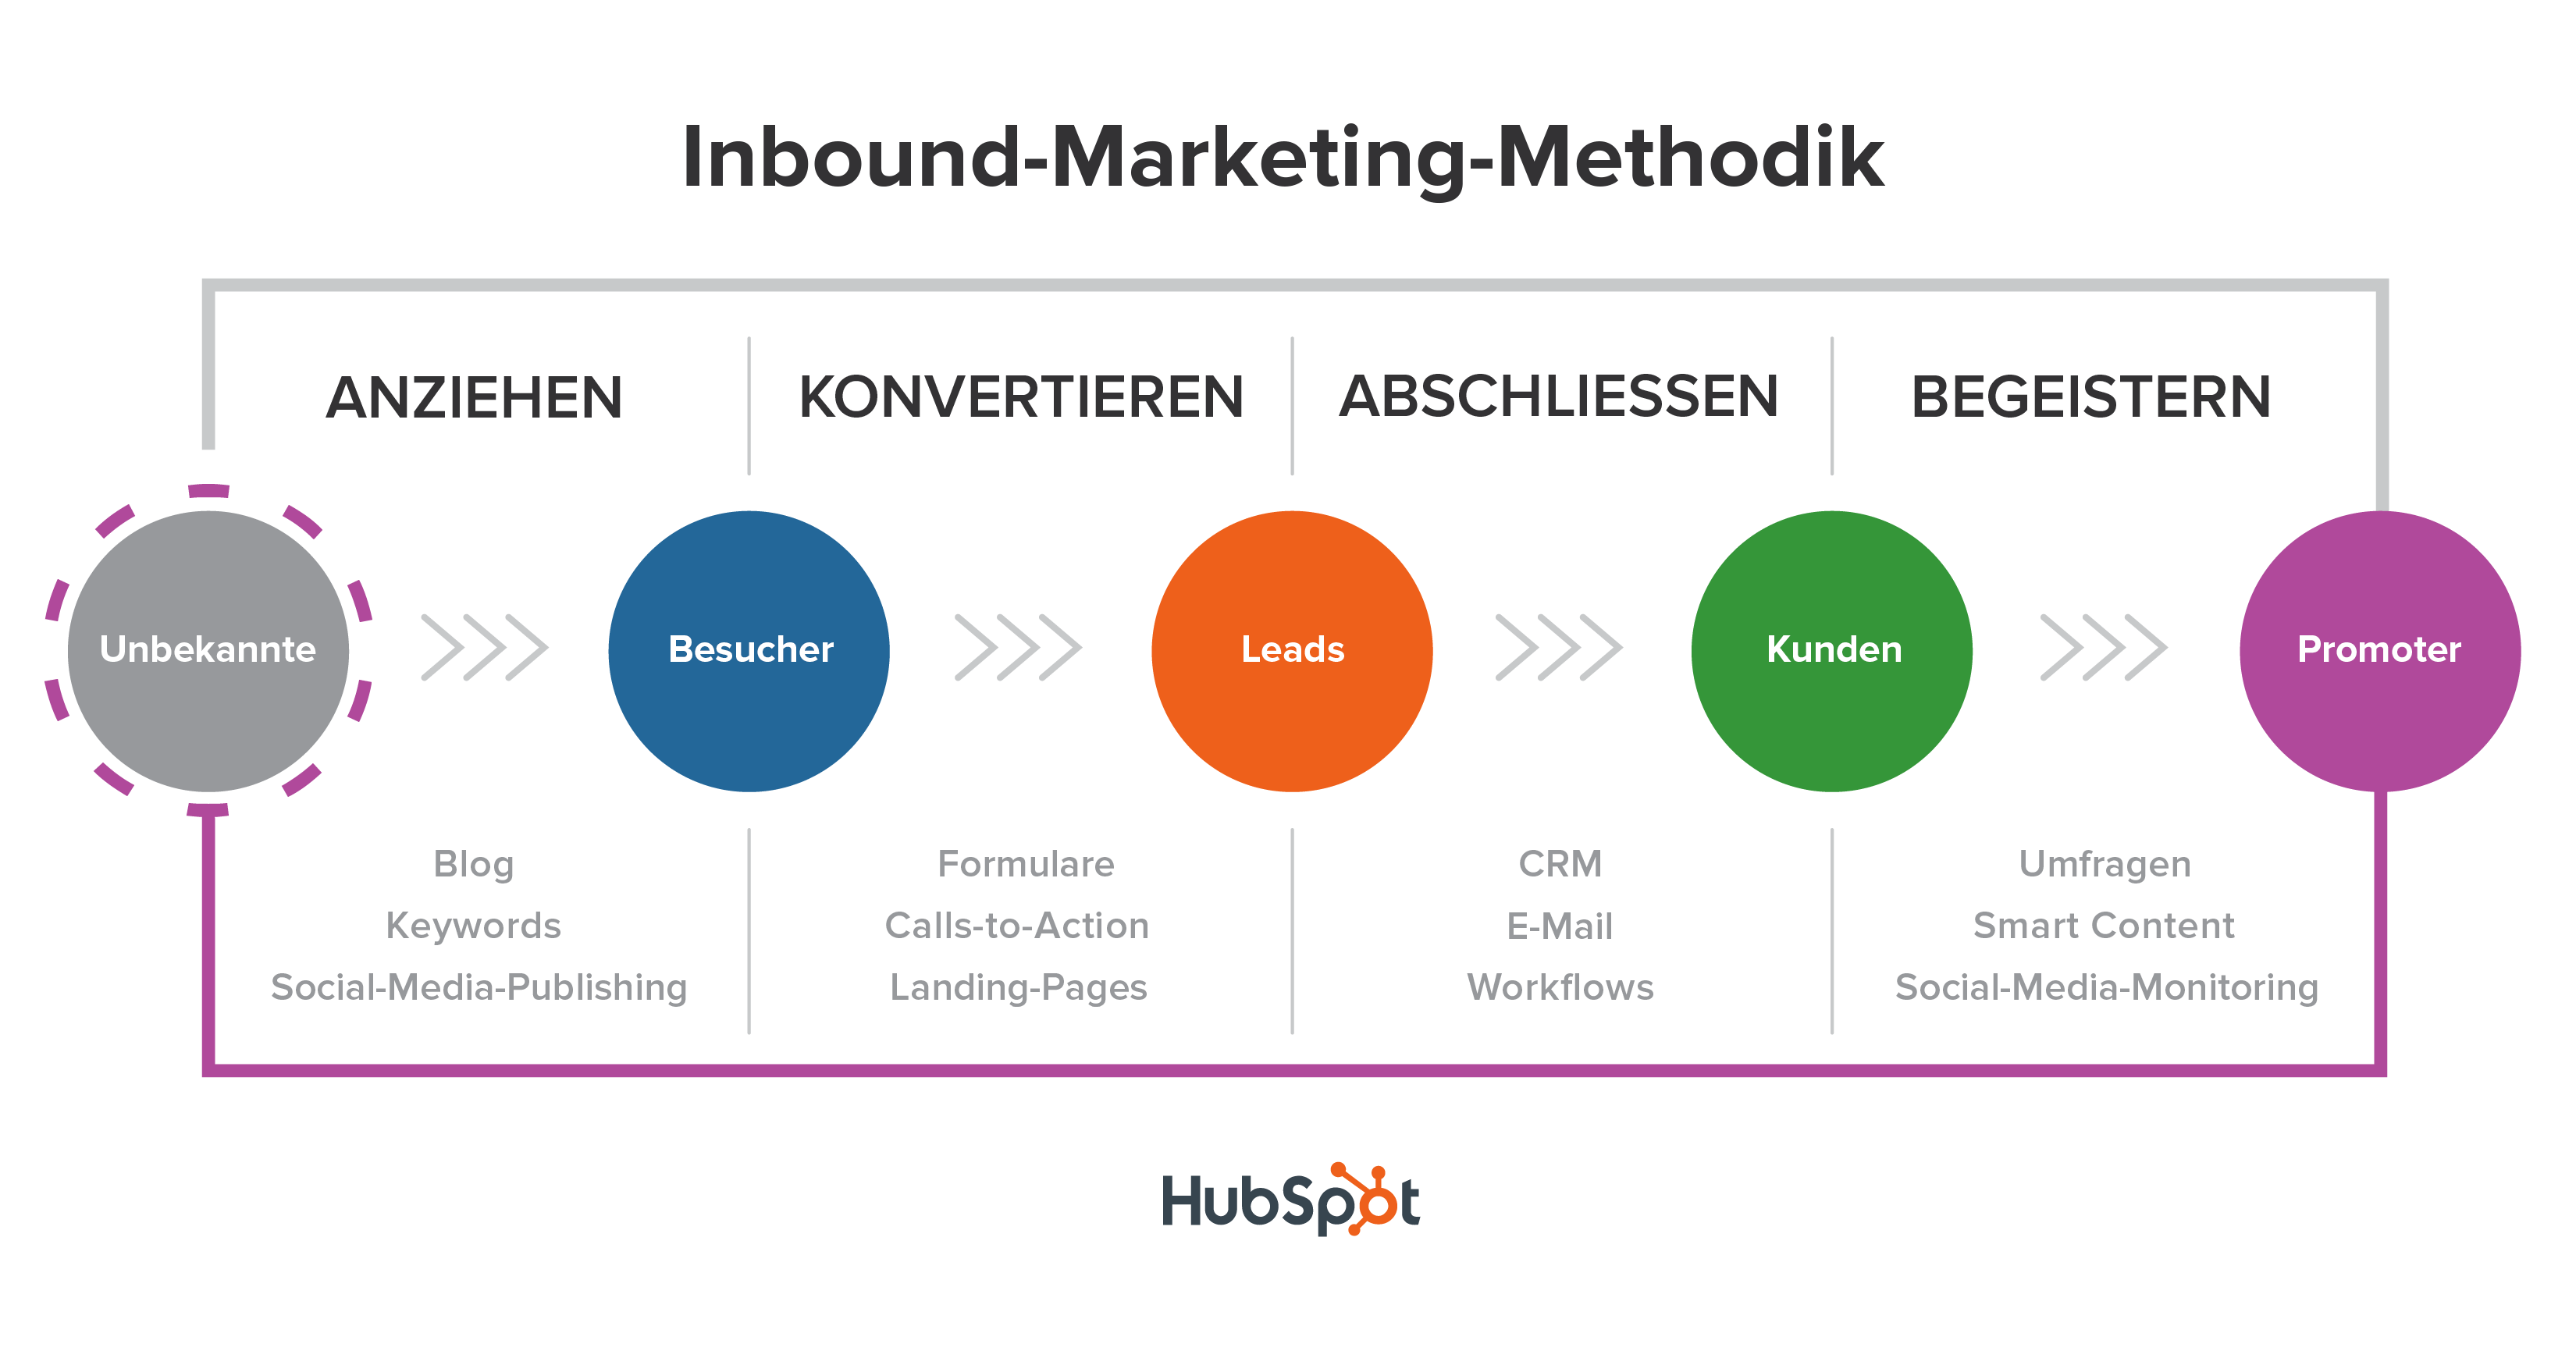 Abbildung 2: Die Inbound Marketing Methodik (Quelle: Hubspot1)